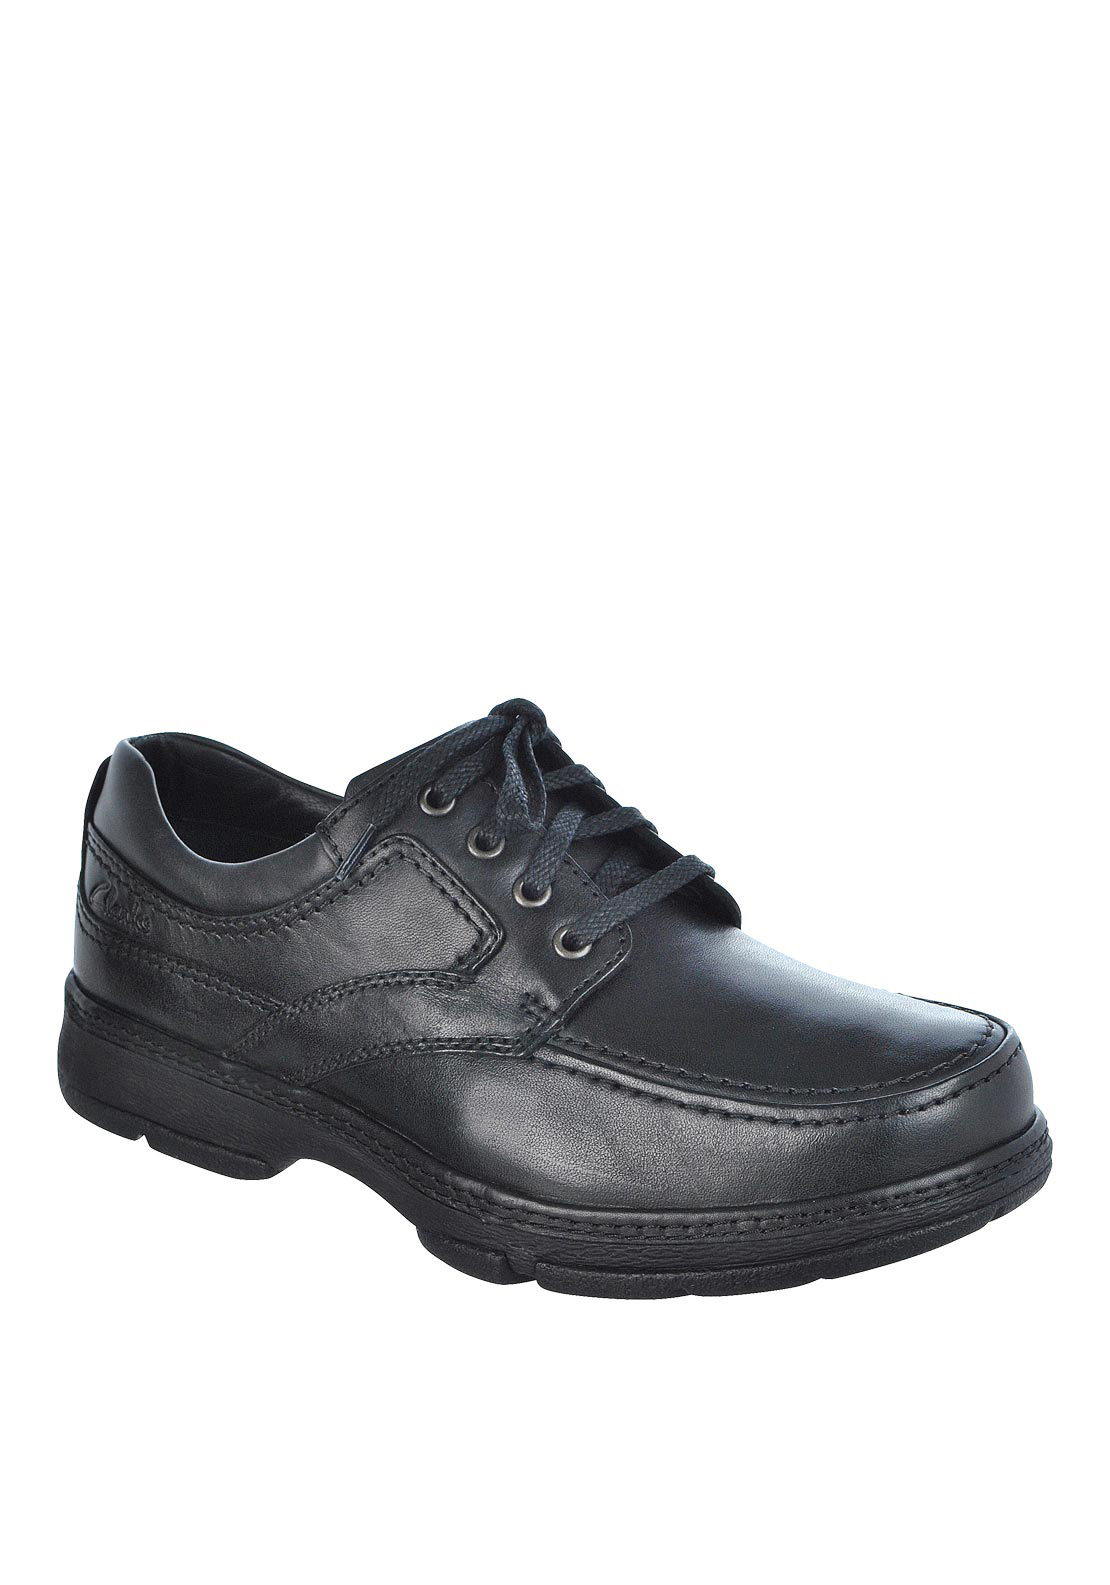 Clarks Mens Star Stride Lace Up Leather Shoe, Black